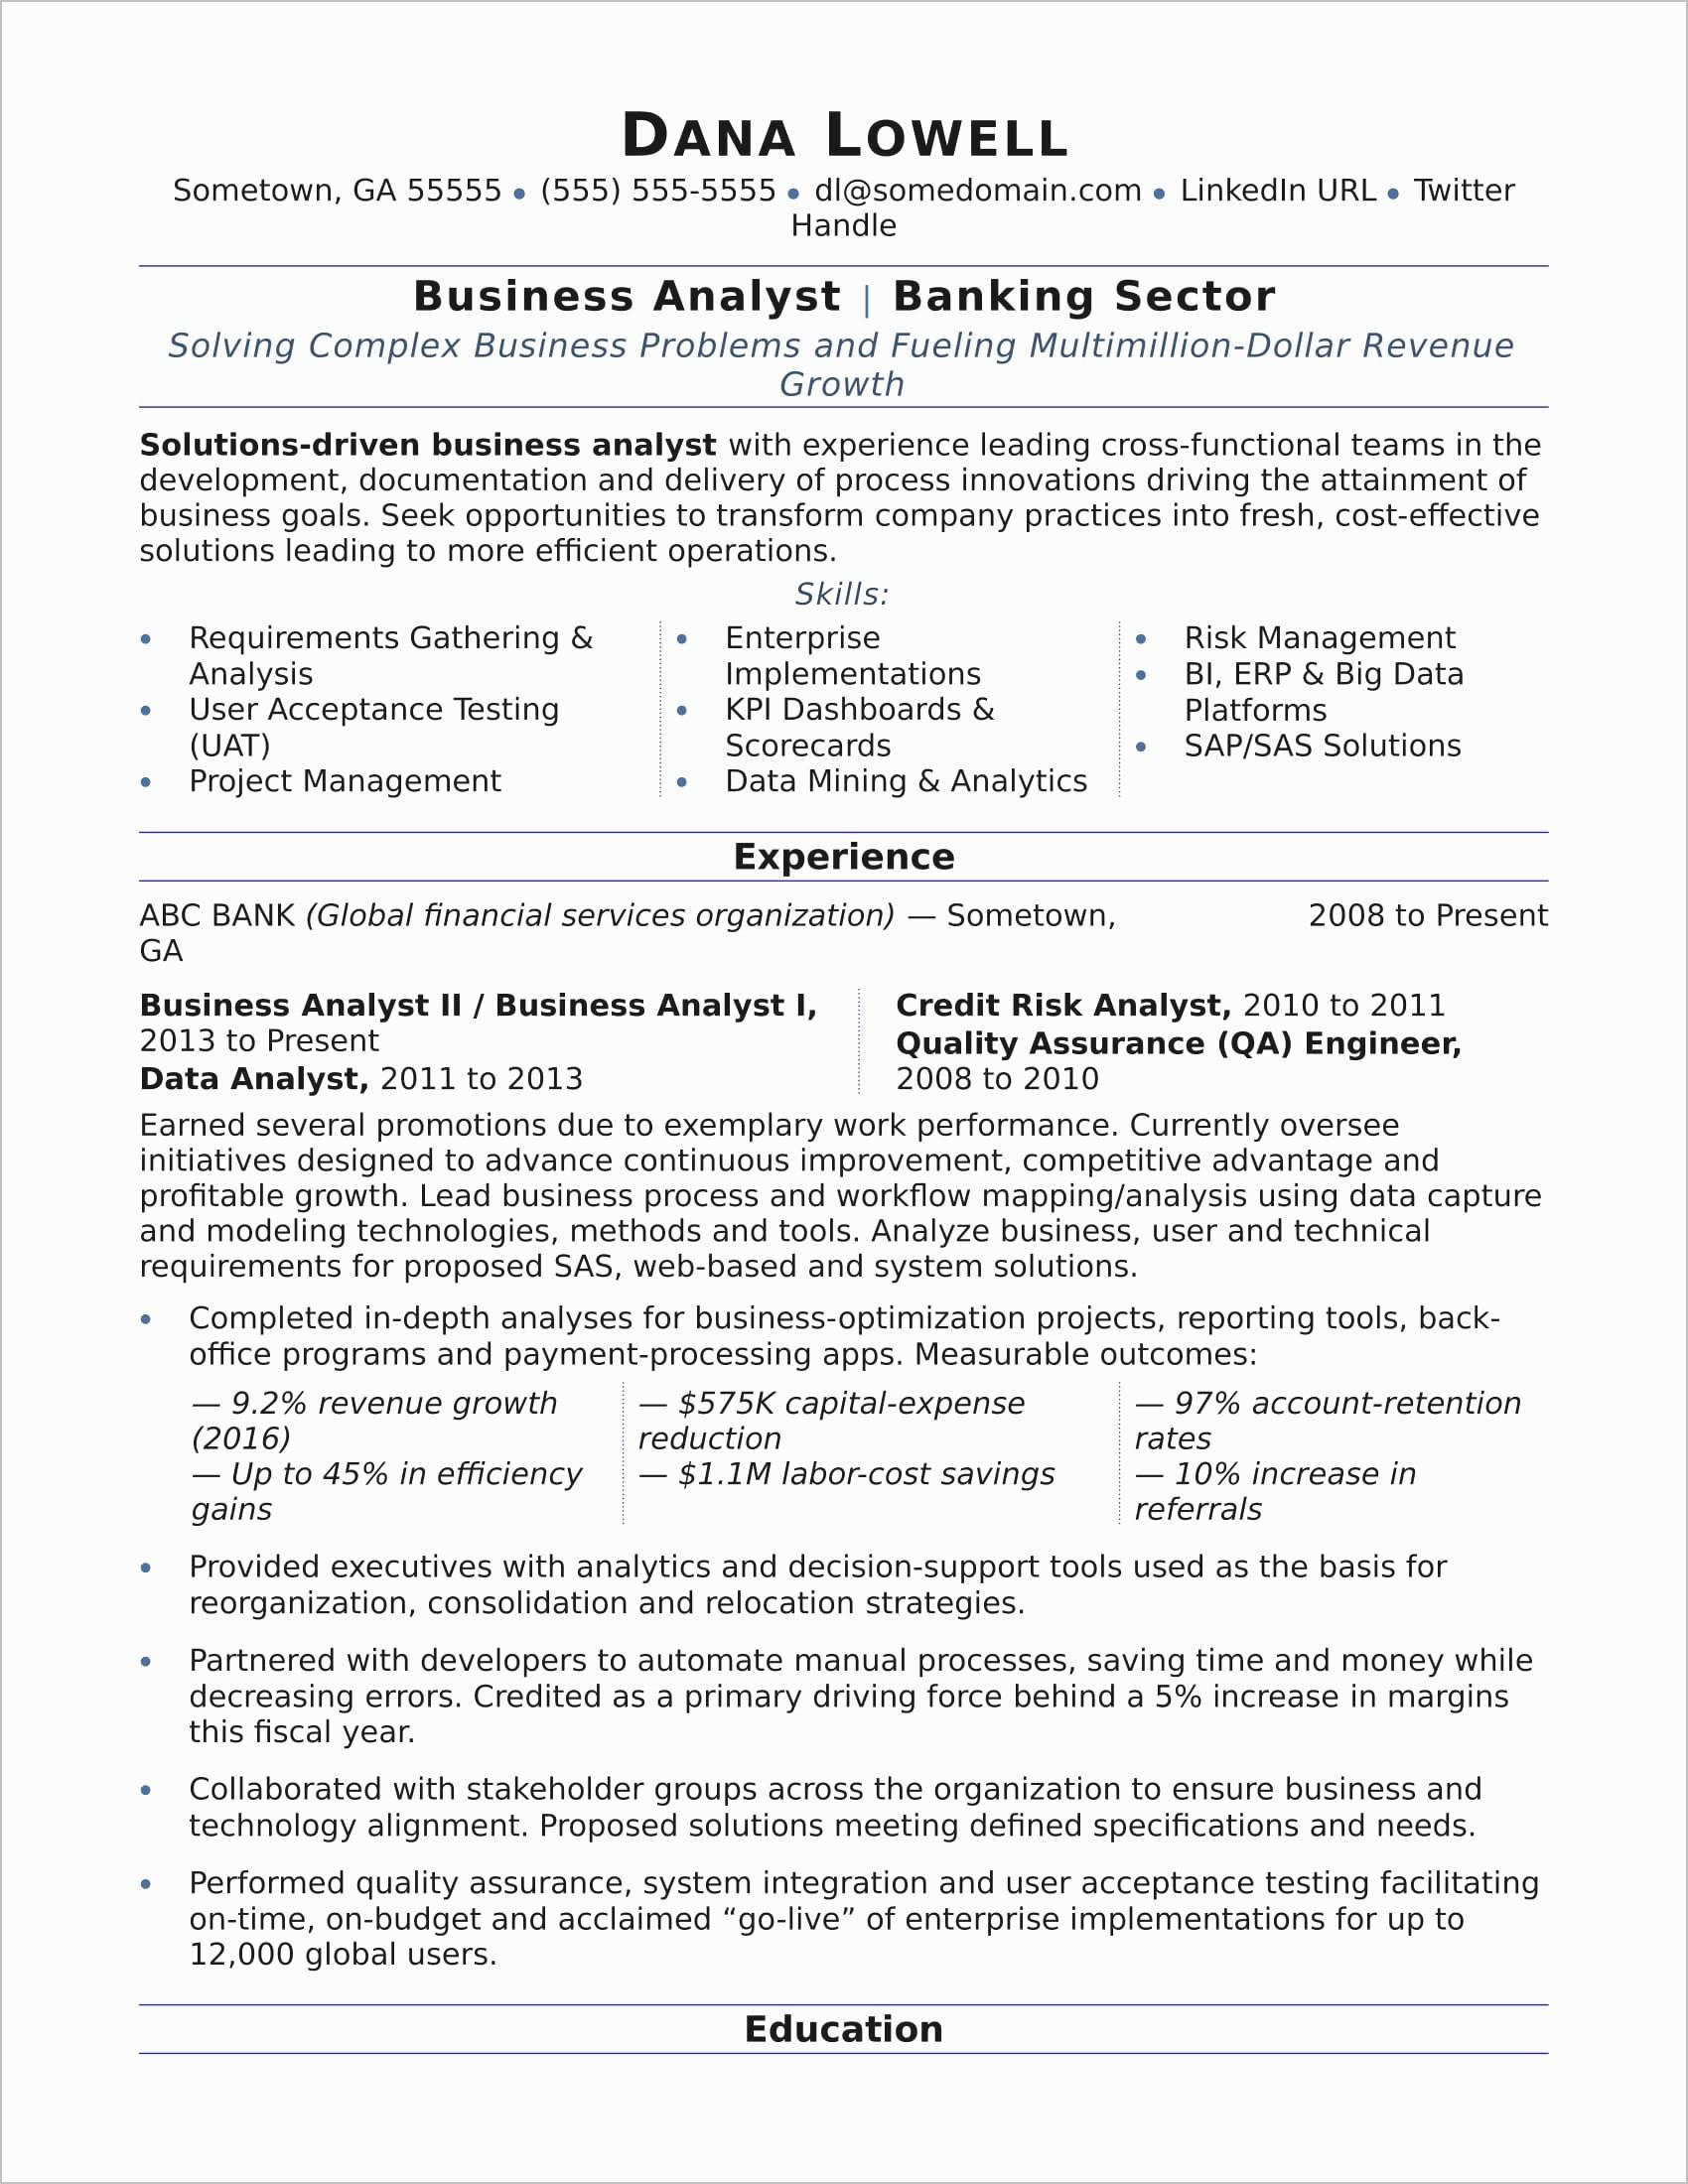 Business Analyst Resume Pdf - Business Analyst Resume Samples New Business Analyst Resume